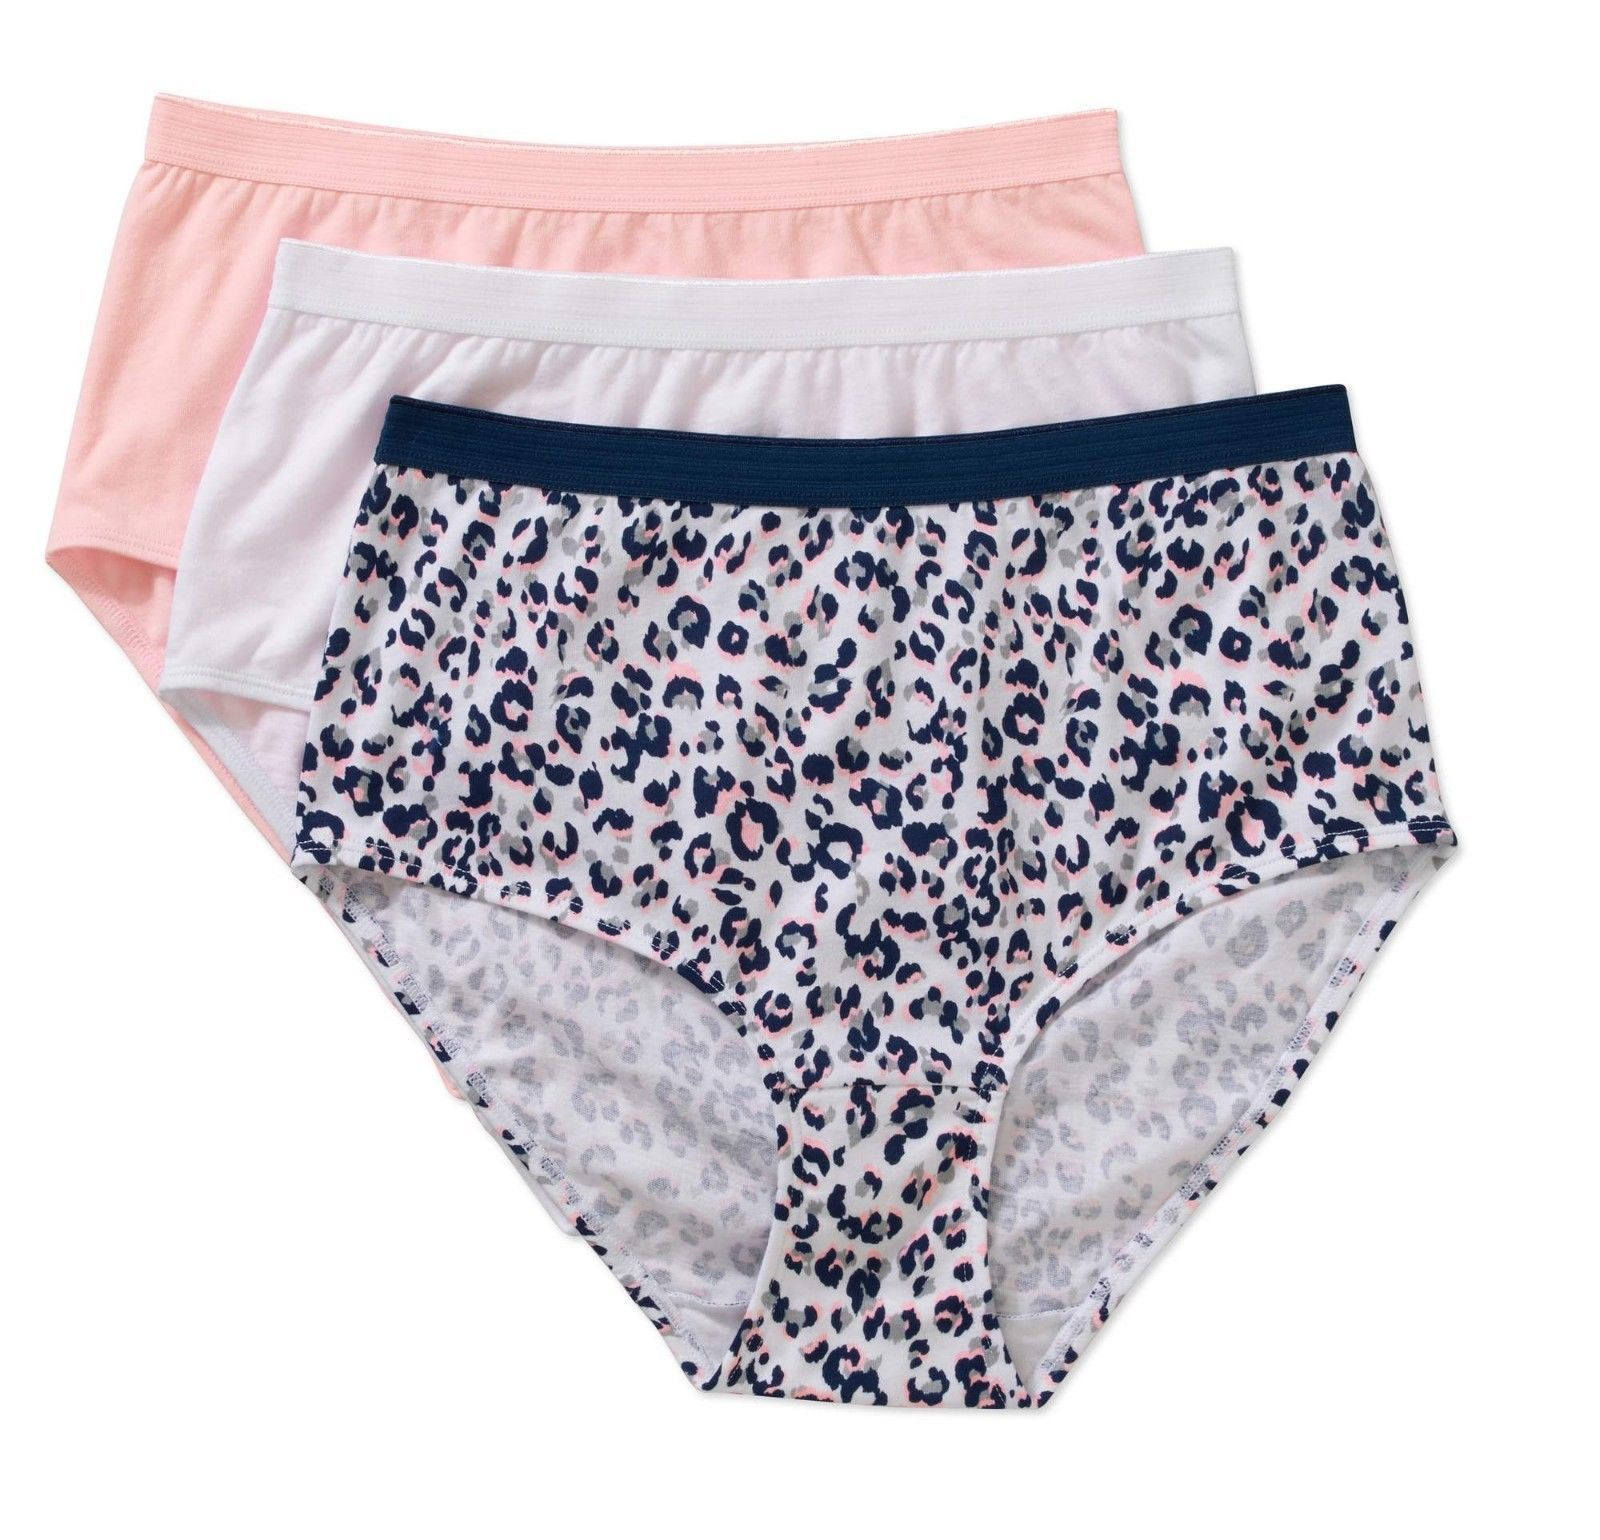 f3a2ba42e69f S l1600. S l1600. Women's Secret Treasures Brief Panties 3 Pair Size Medium  6 Pink Blue Leopard